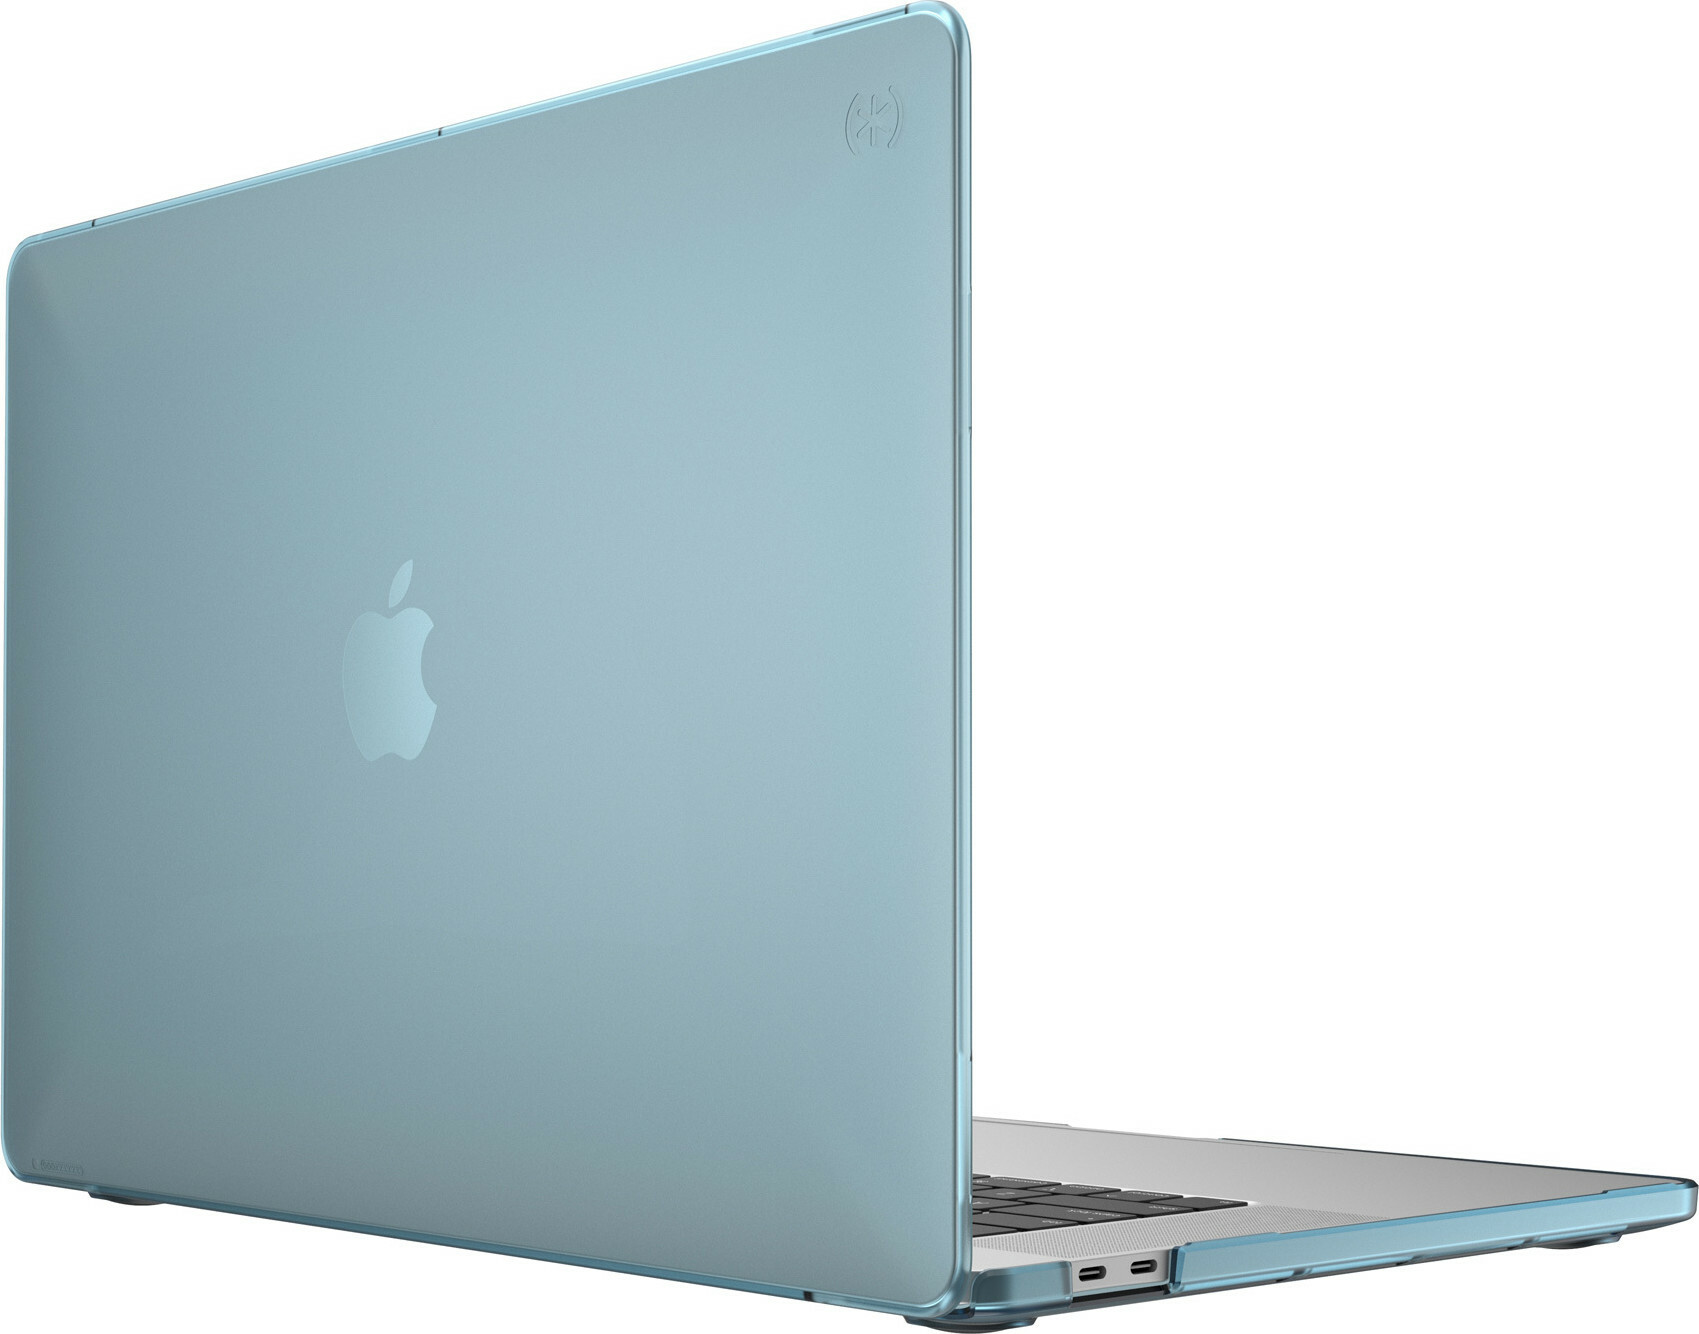 Speck Smartshell Macbook Pro 16 inch (2020) Swell Blue